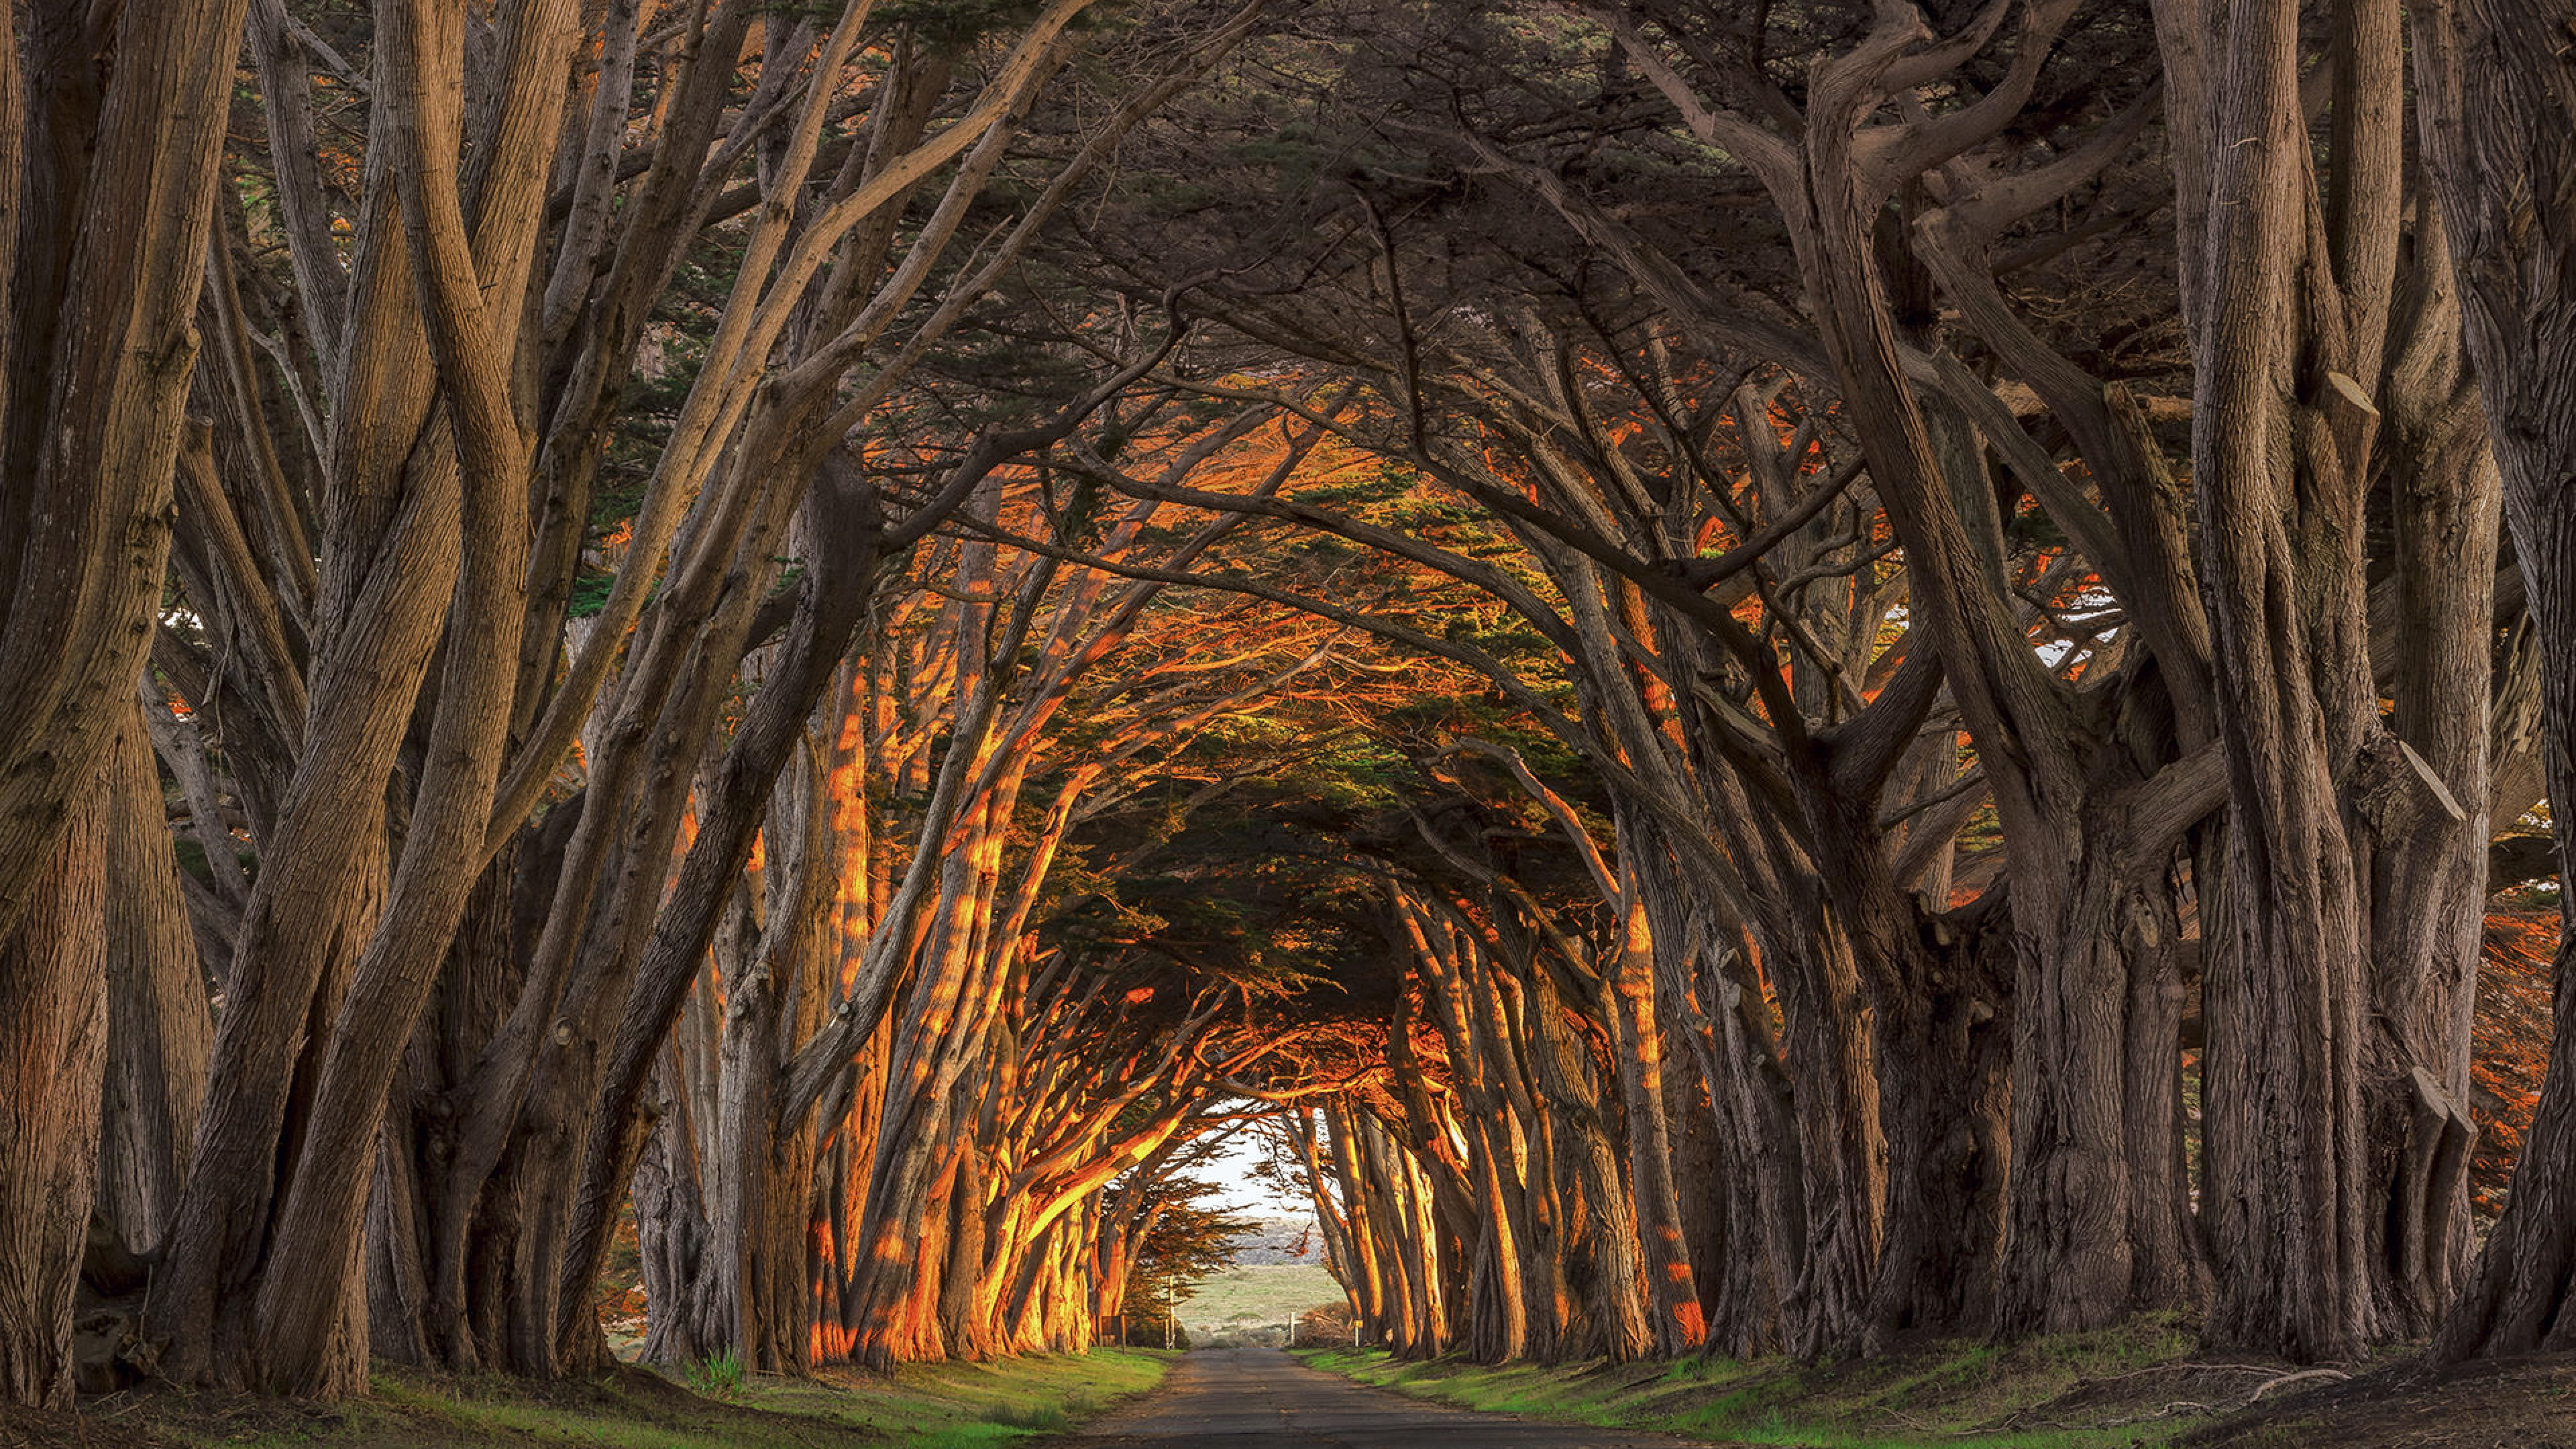 Old trees create a canopy of branches over road